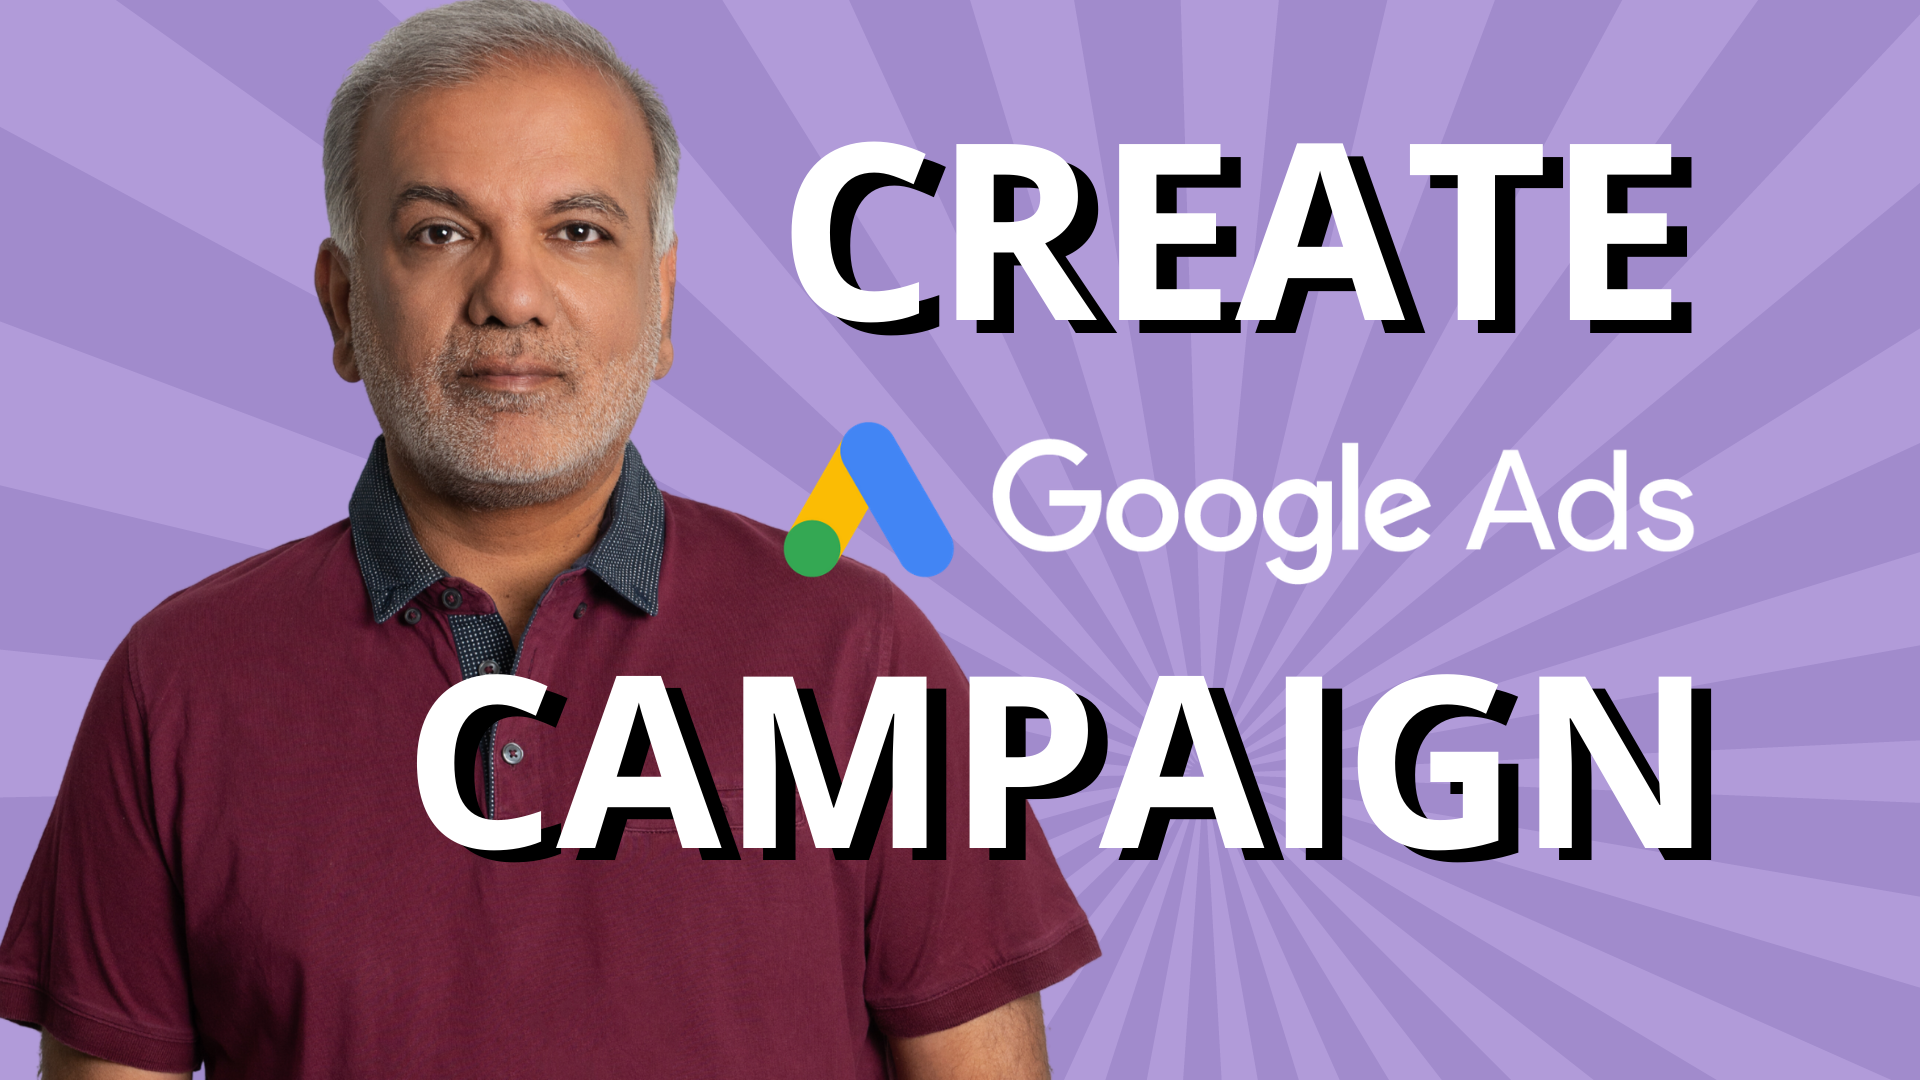 How To Create Google Ads Campaign